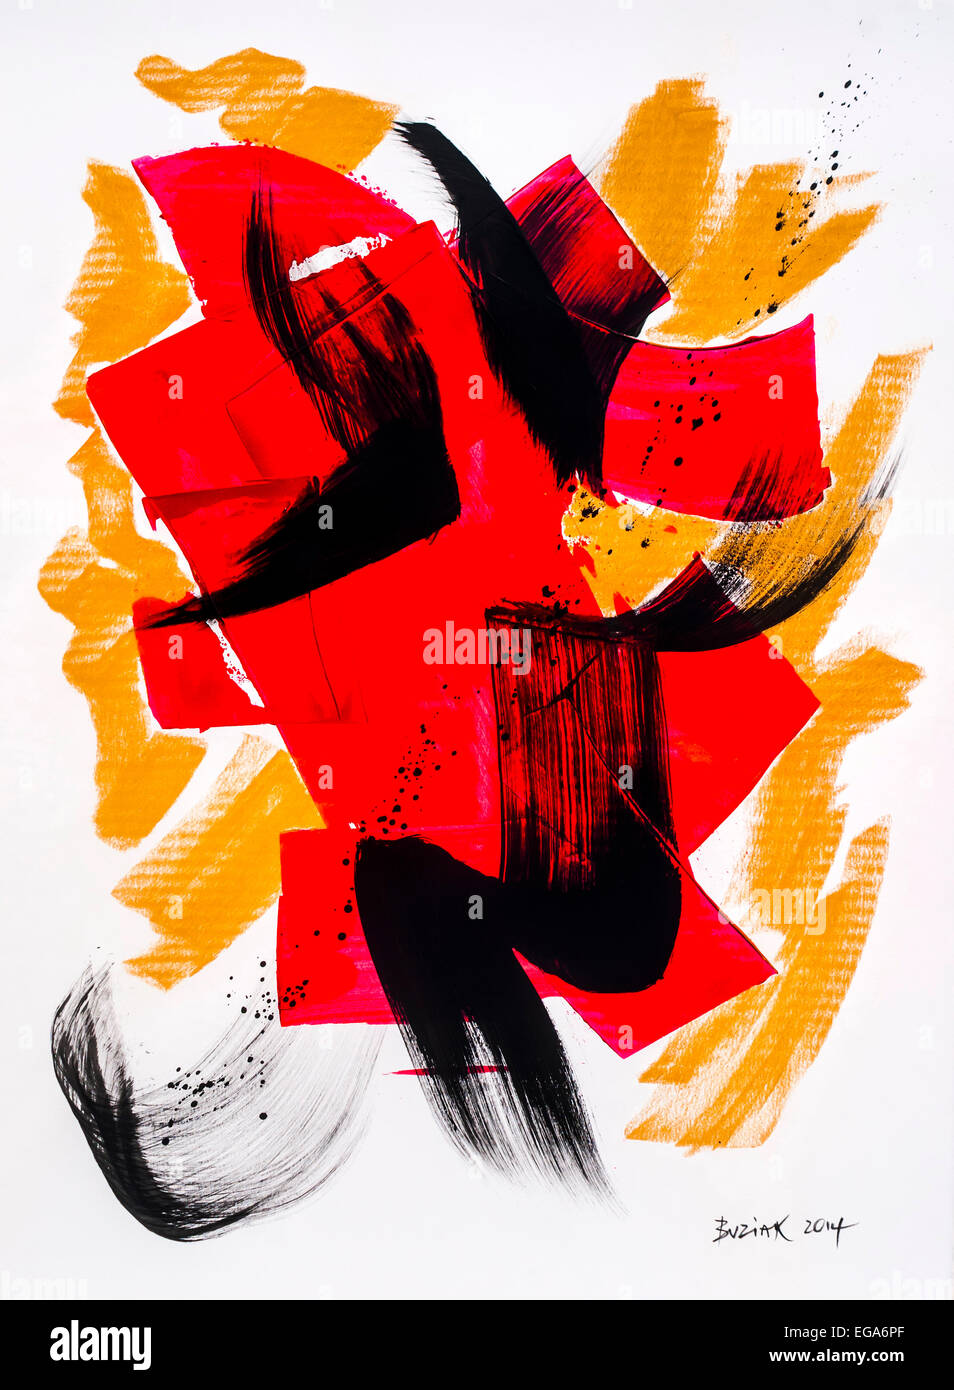 Modern abstract acrylic painting by Ed Buziak - France. Stock Photo